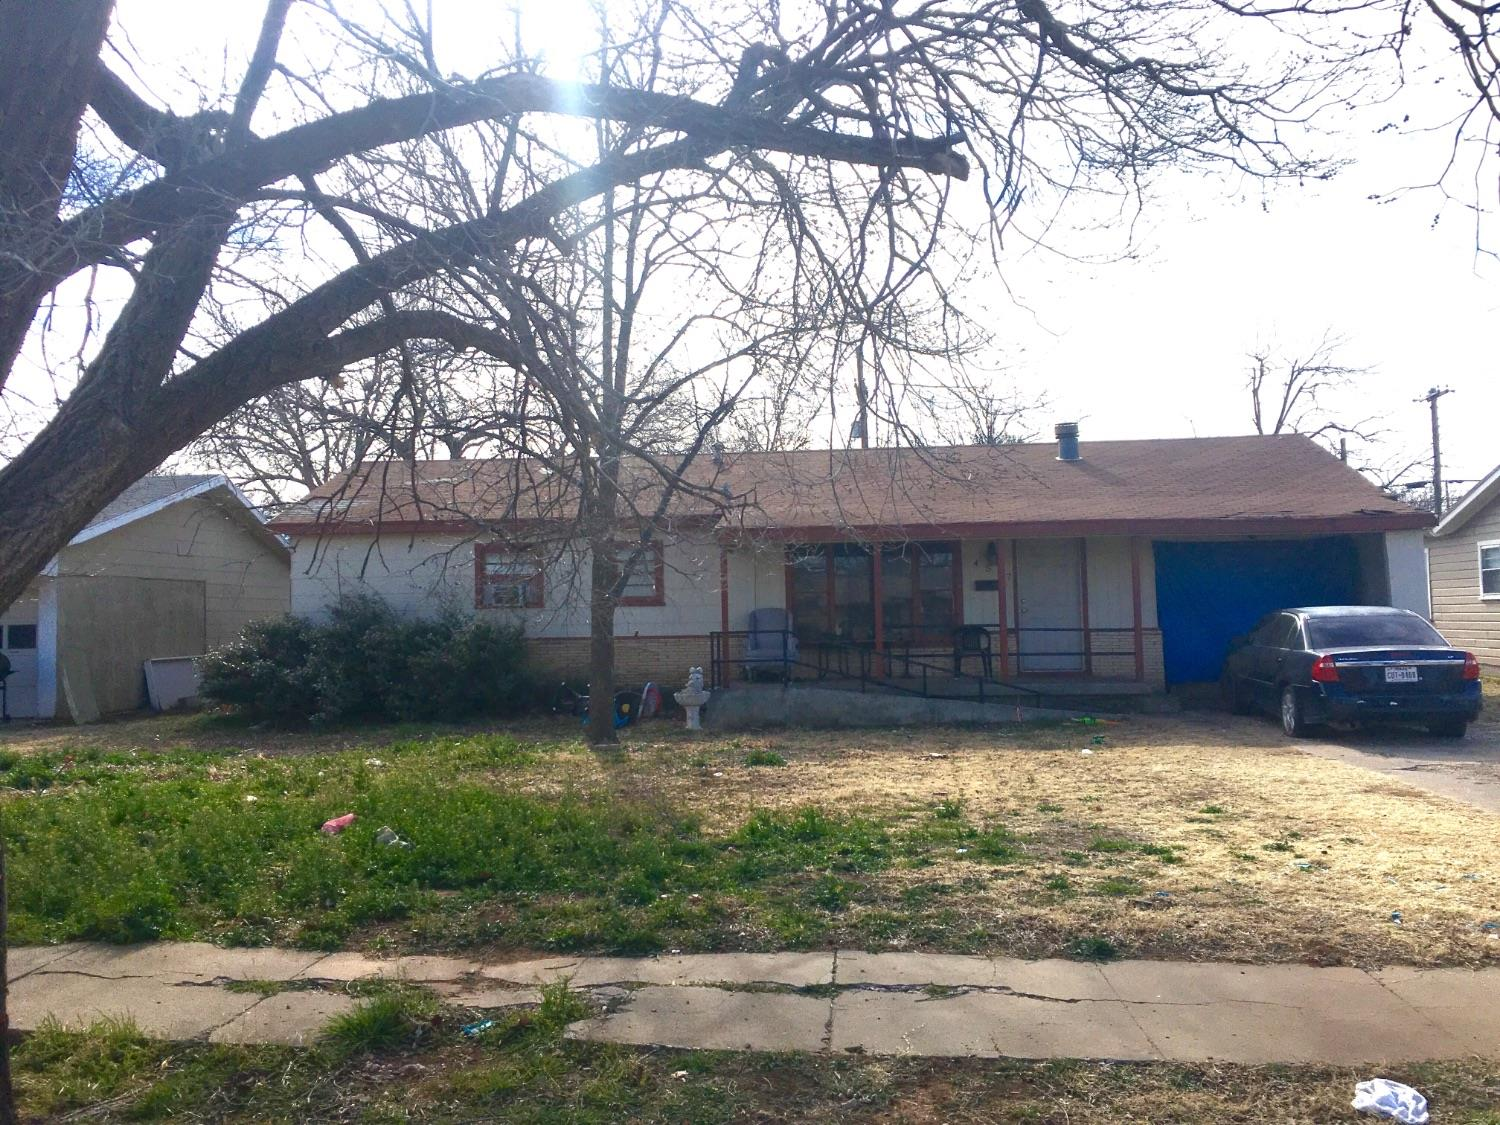 Charming investment home close to Texas Tech and the Medical District! Wonderful opportunity to own rental property with great occupants. This home is for investment purposes as it has tenants. Lease terms convey with purchase. Rents for $850/mo with $500 deposit.  Roof will be replaced prior to closing.